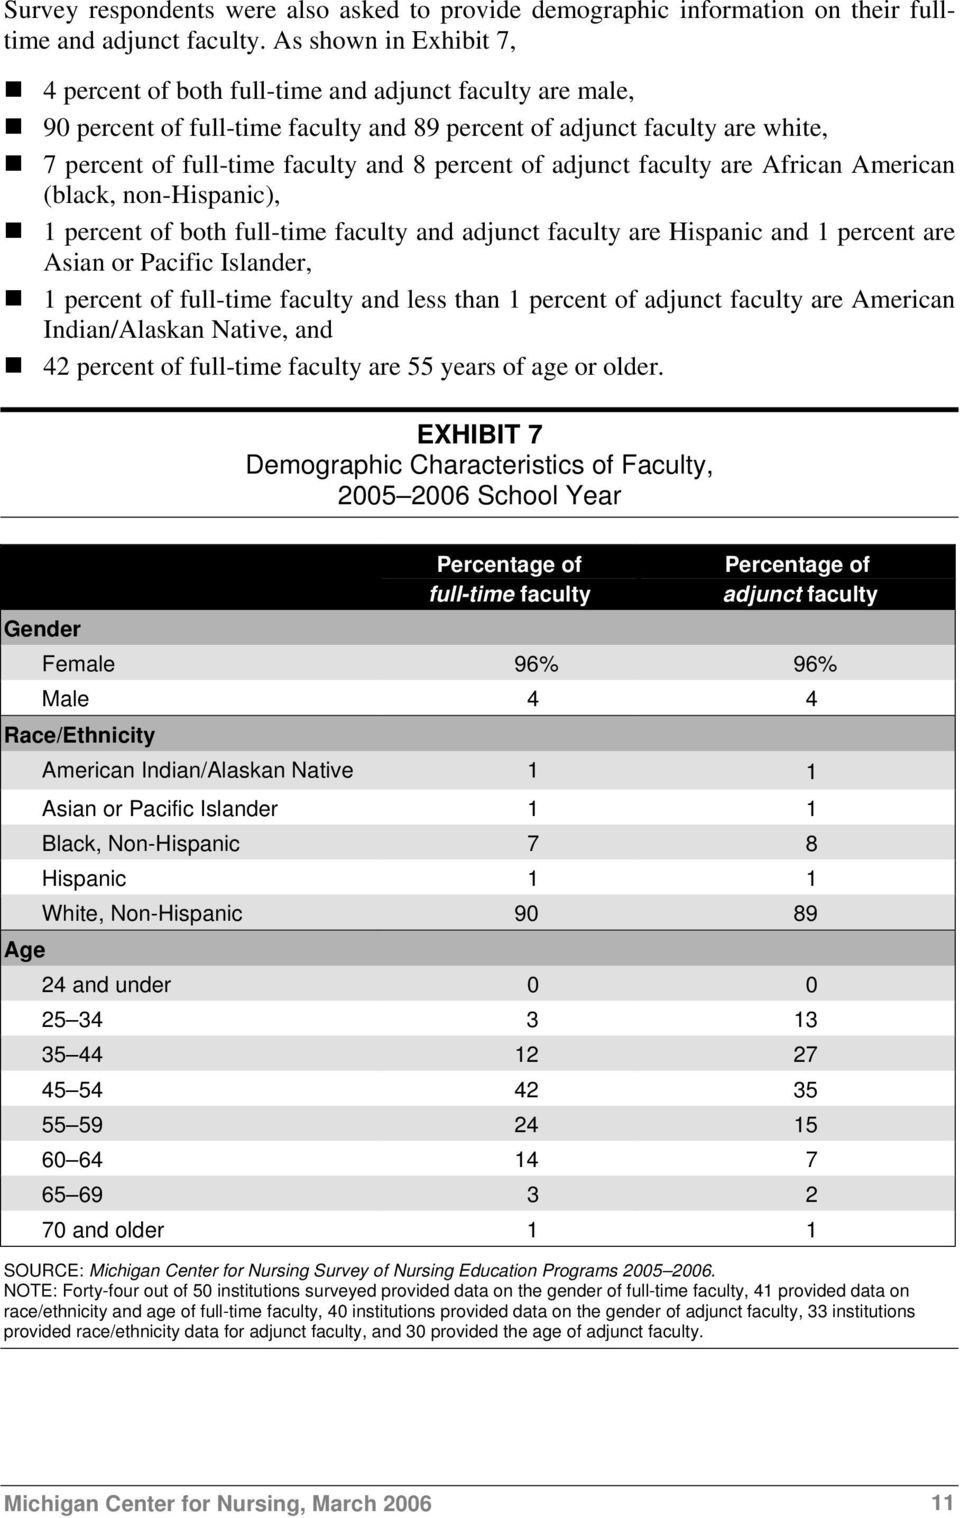 percent of adjunct faculty are African American (black, non-hispanic), 1 percent of both full-time faculty and adjunct faculty are Hispanic and 1 percent are Asian or Pacific Islander, 1 percent of